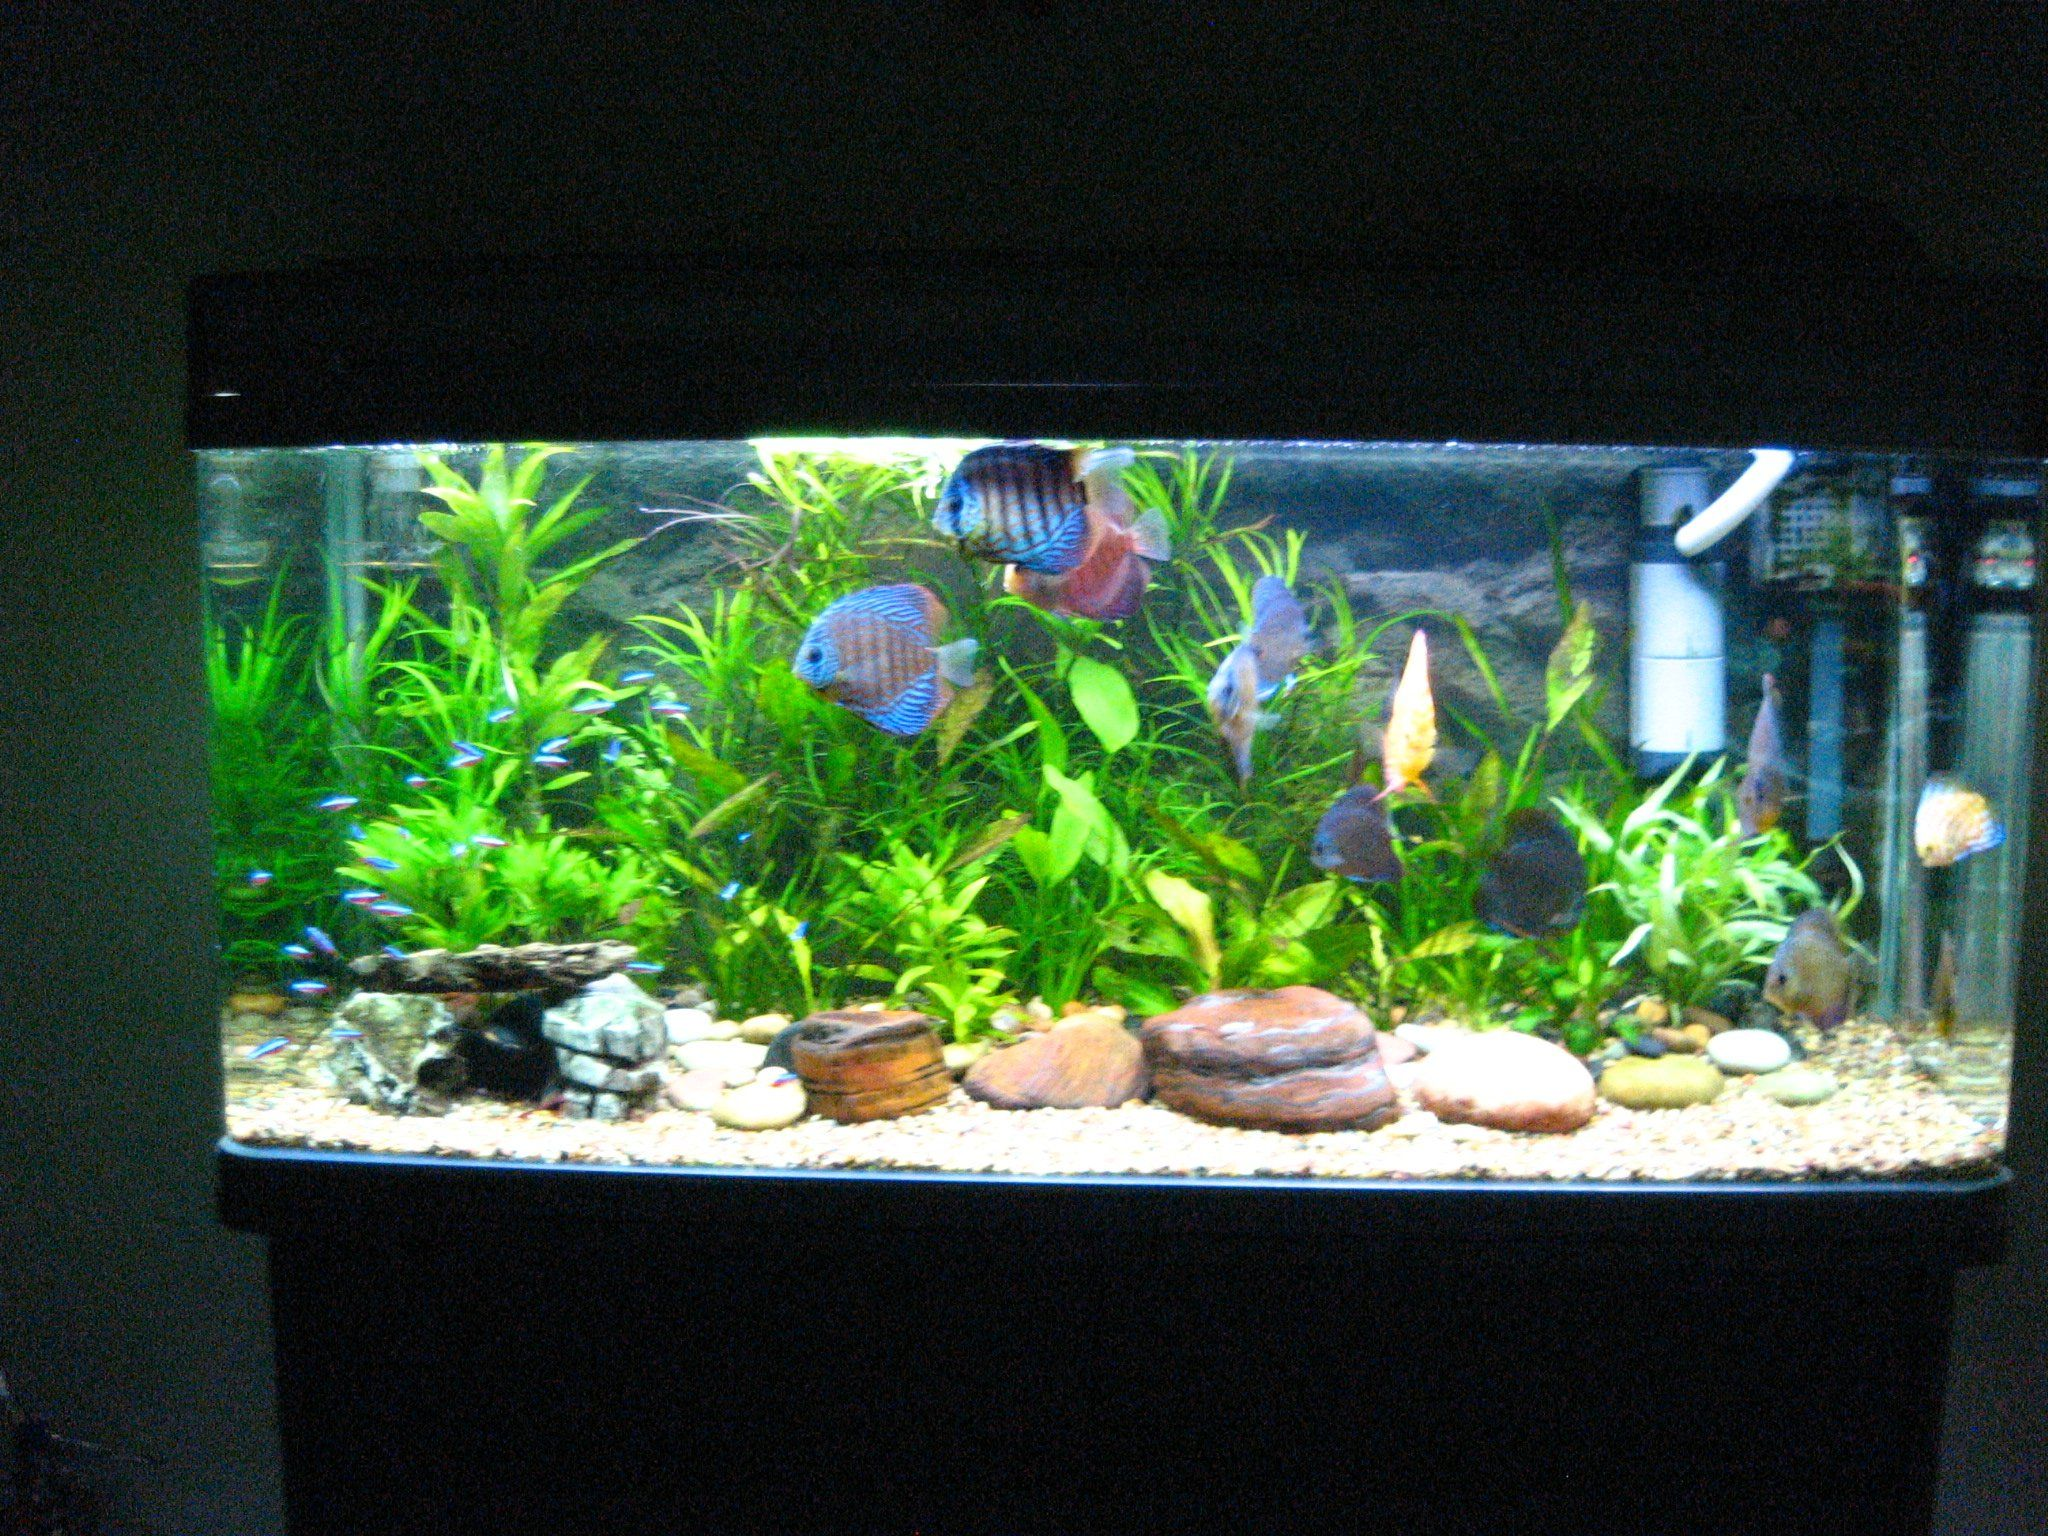 Neon tetra for sale aquariumfish net - Traquil Discuss And Neon Tetra Tank Docile Fish W Bright Colors